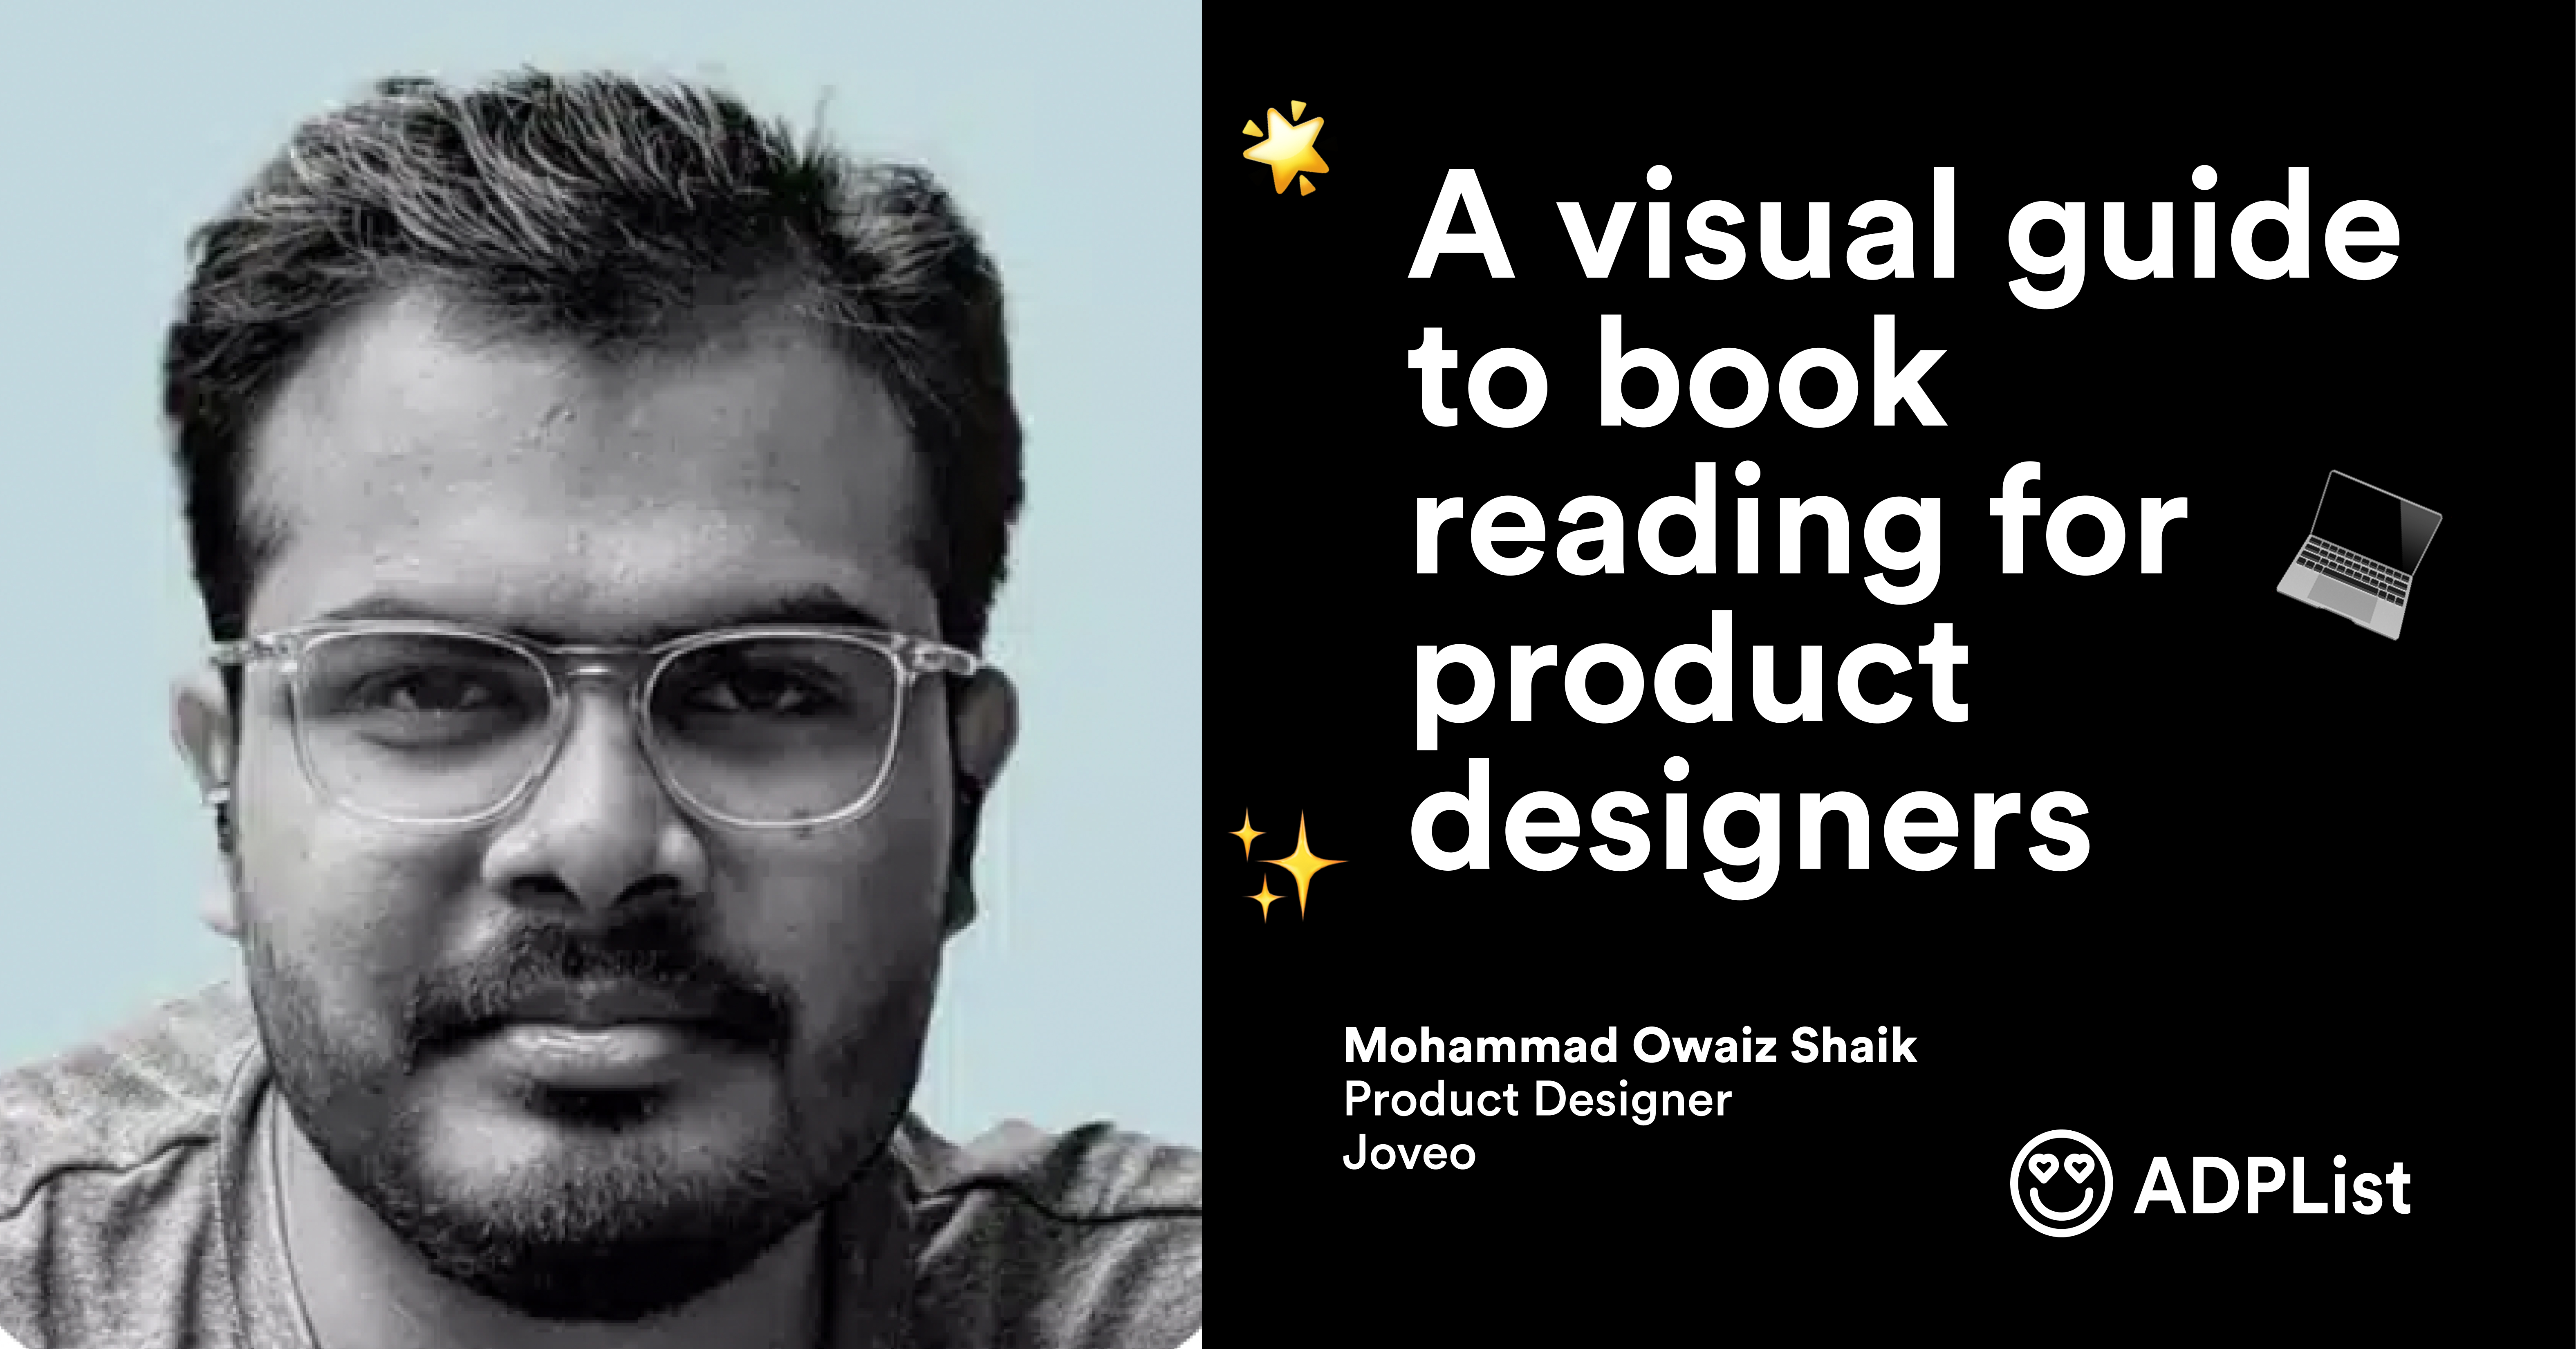 A visual guide to book reading for product designers